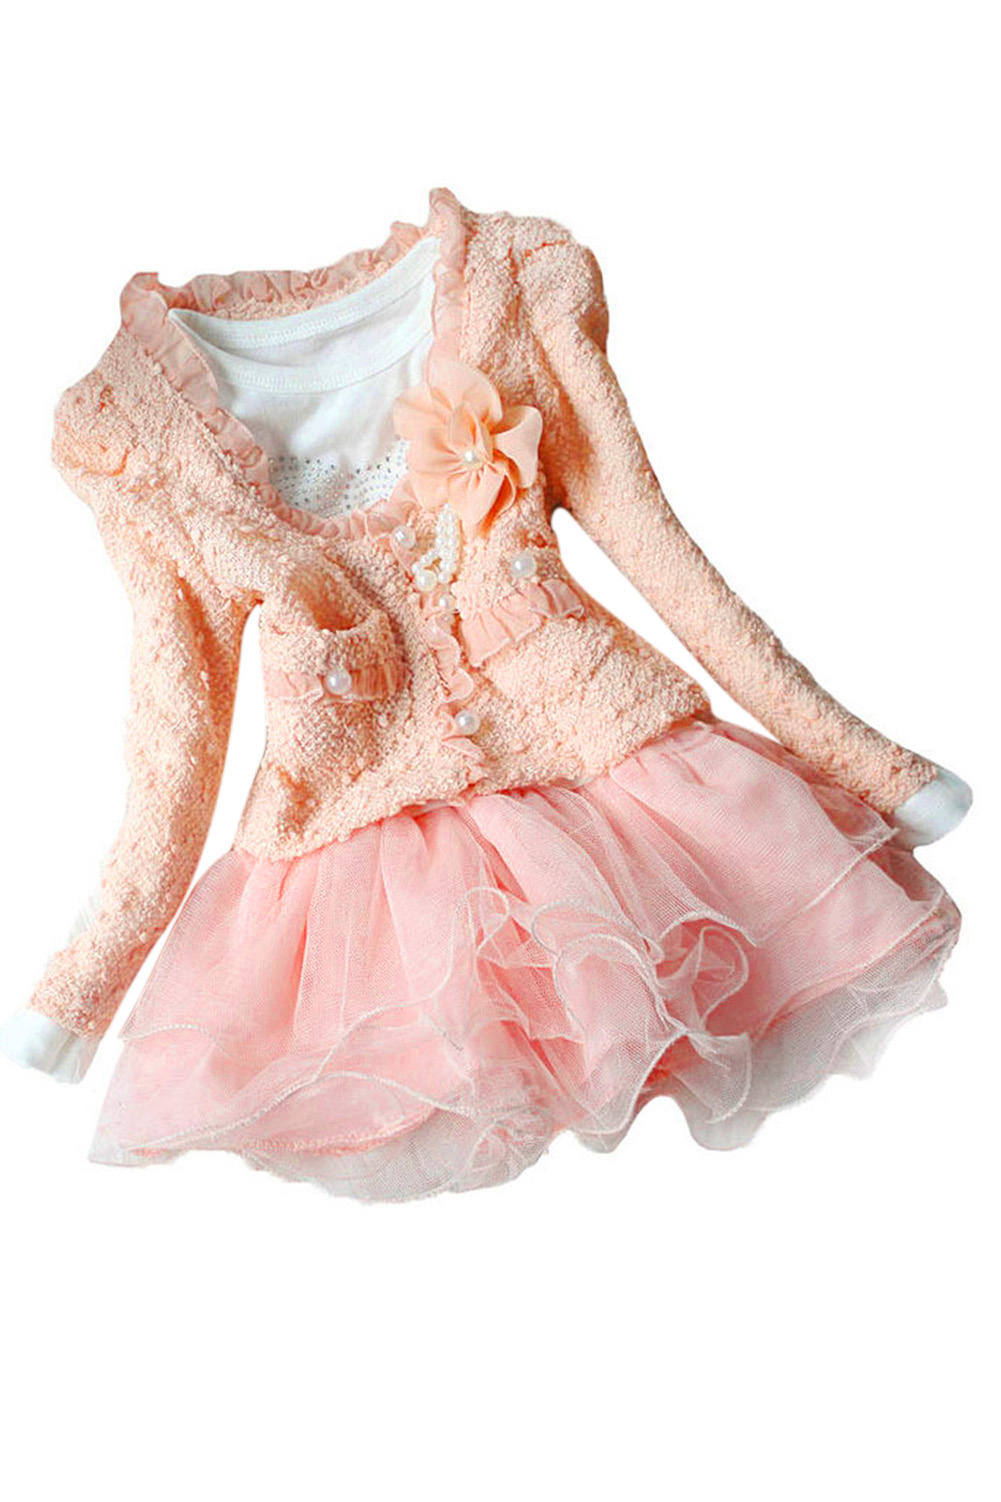 ABWE Best Sale  Beautiful Girls Casual Jackets Cardigan Tutu Dress Baby Kids Coat+Dress Girls Dress Pink 12 abwe 4x a